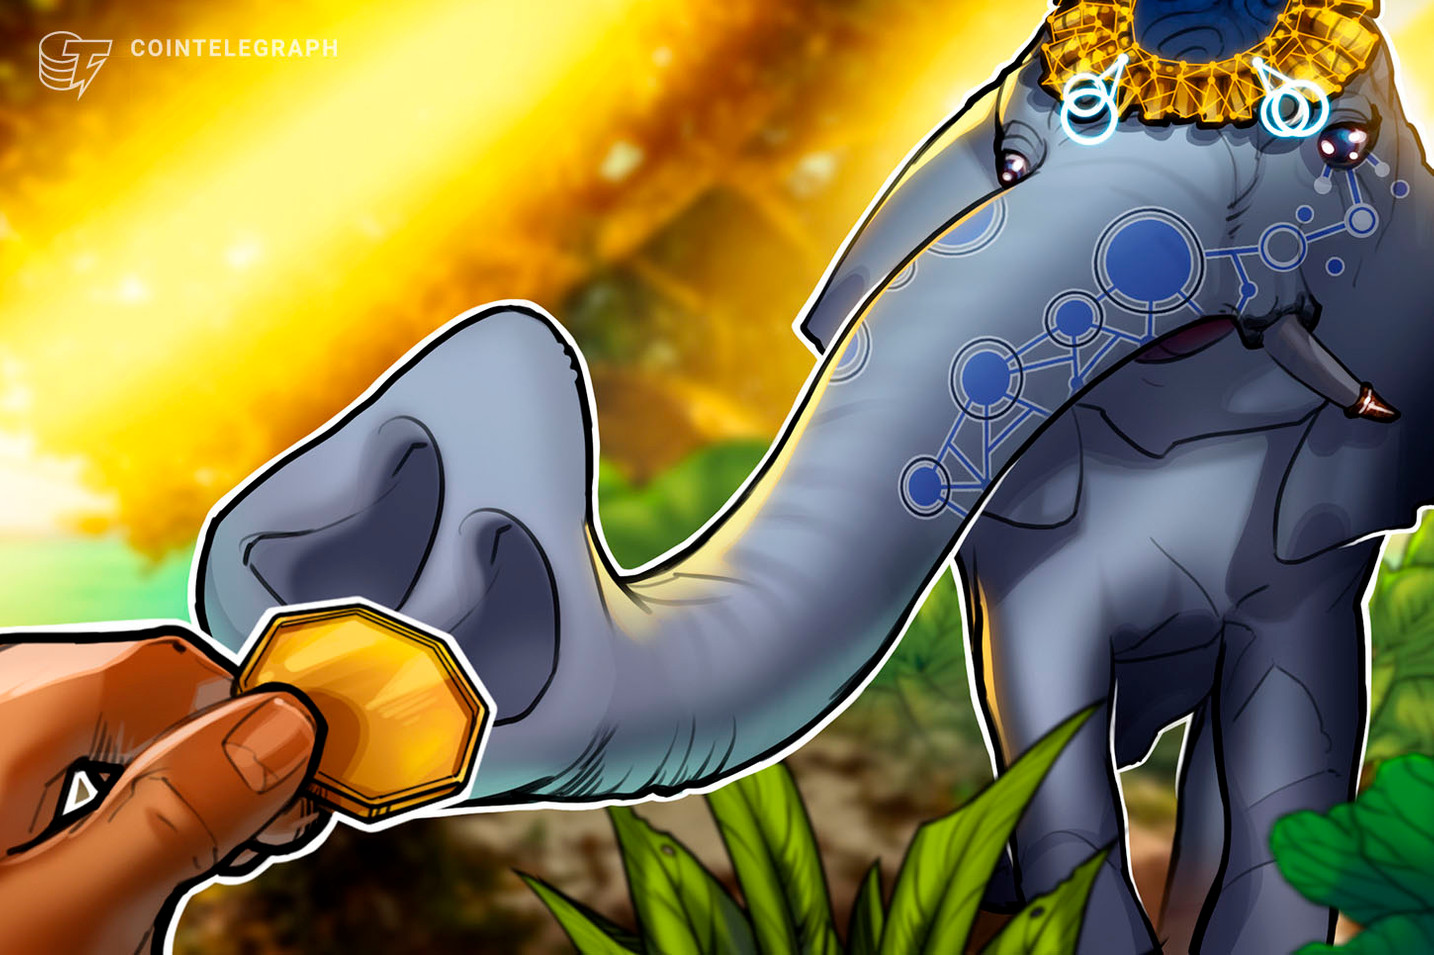 Bithumb Global plant regulierte Kryptobörse in Indien